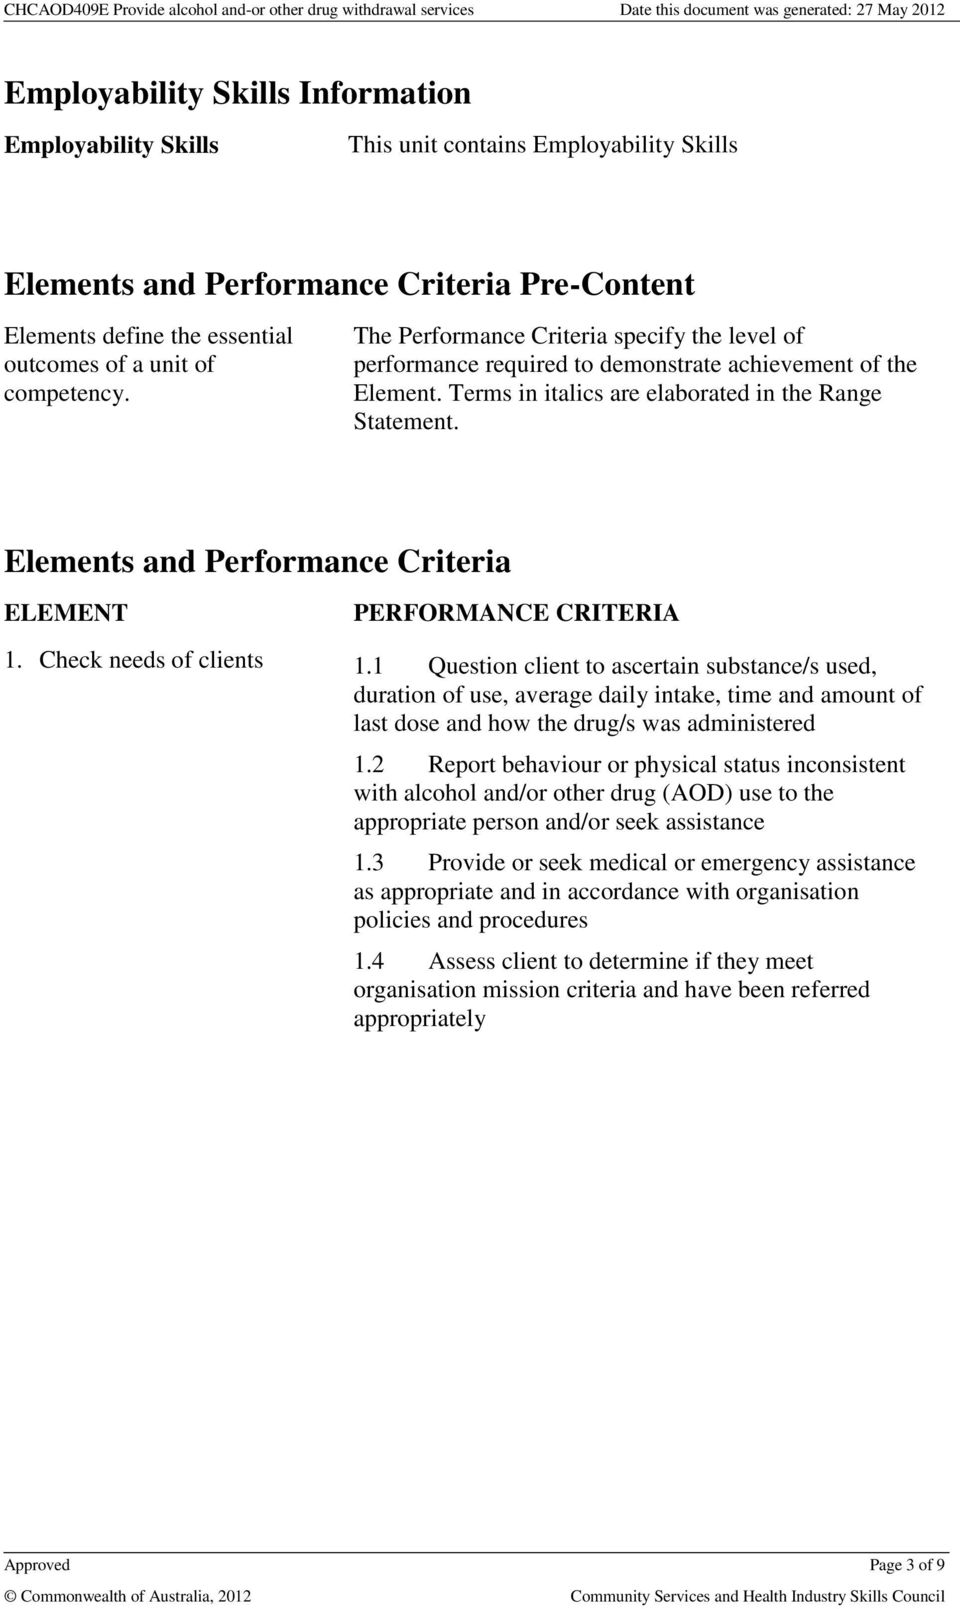 Elements and Performance Criteria ELEMENT PERFORMANCE CRITERIA 1. Check needs of clients 1.